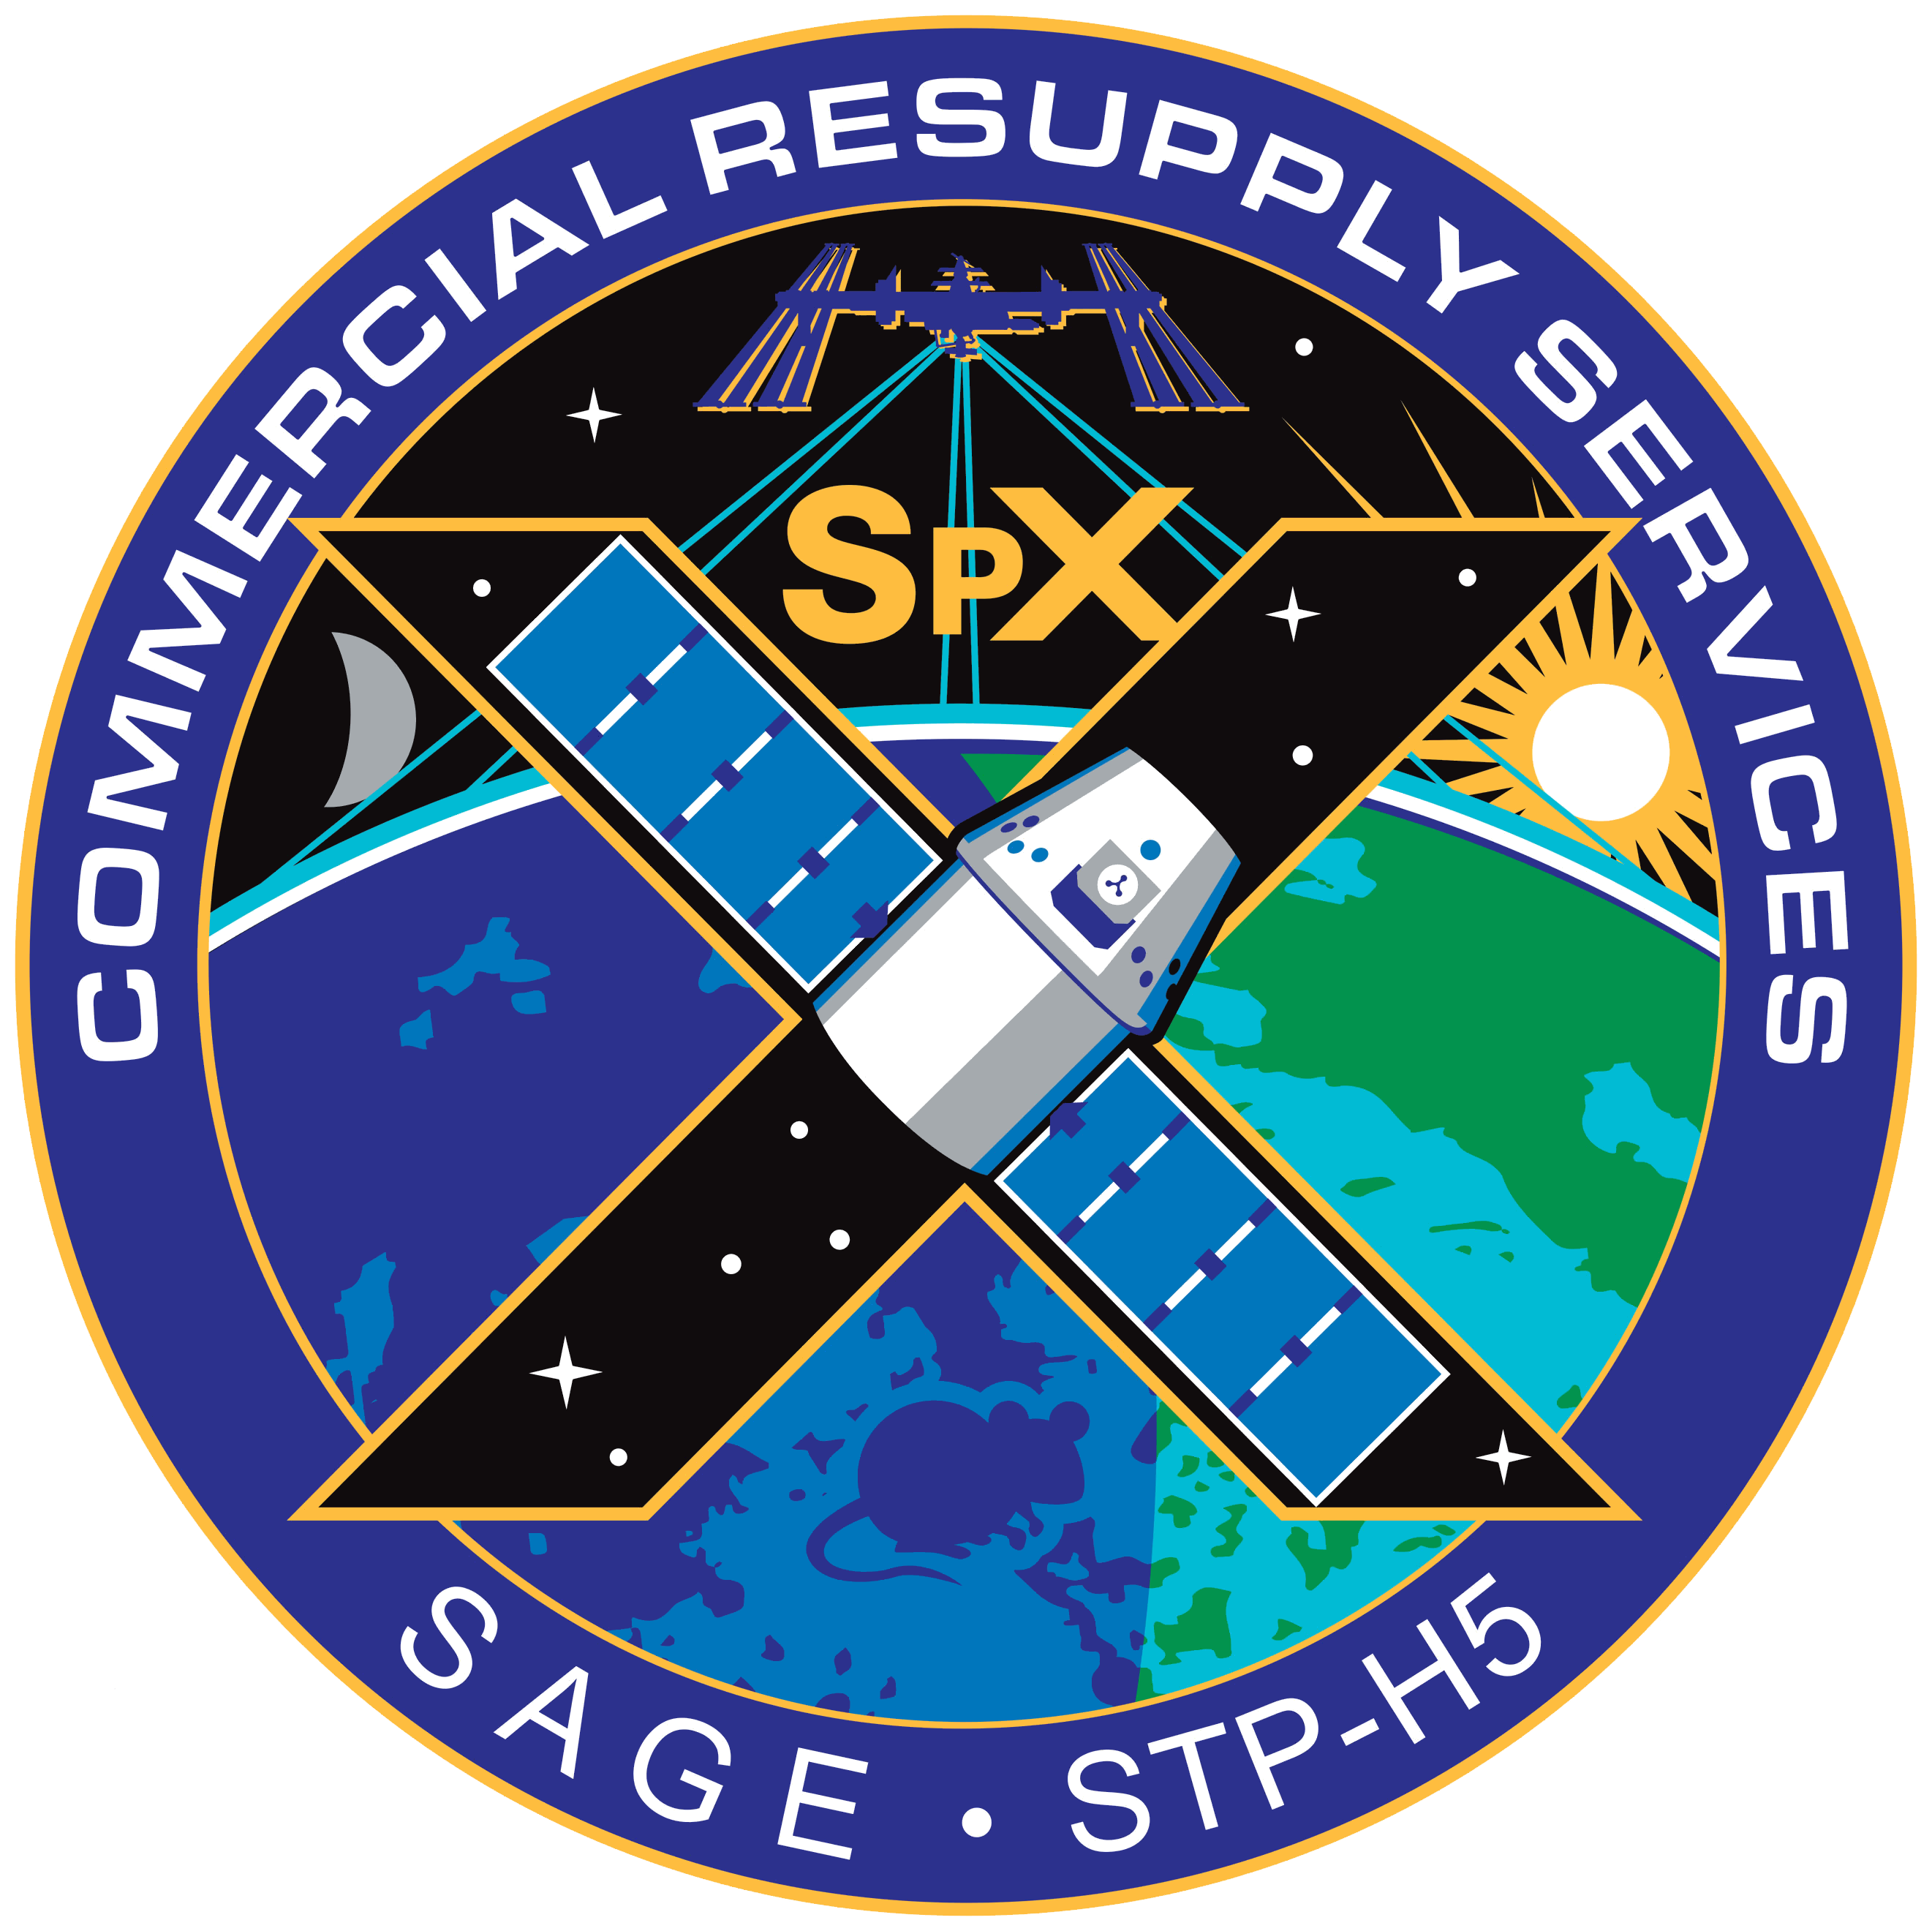 SpaceX_CRS-10_Patch.png